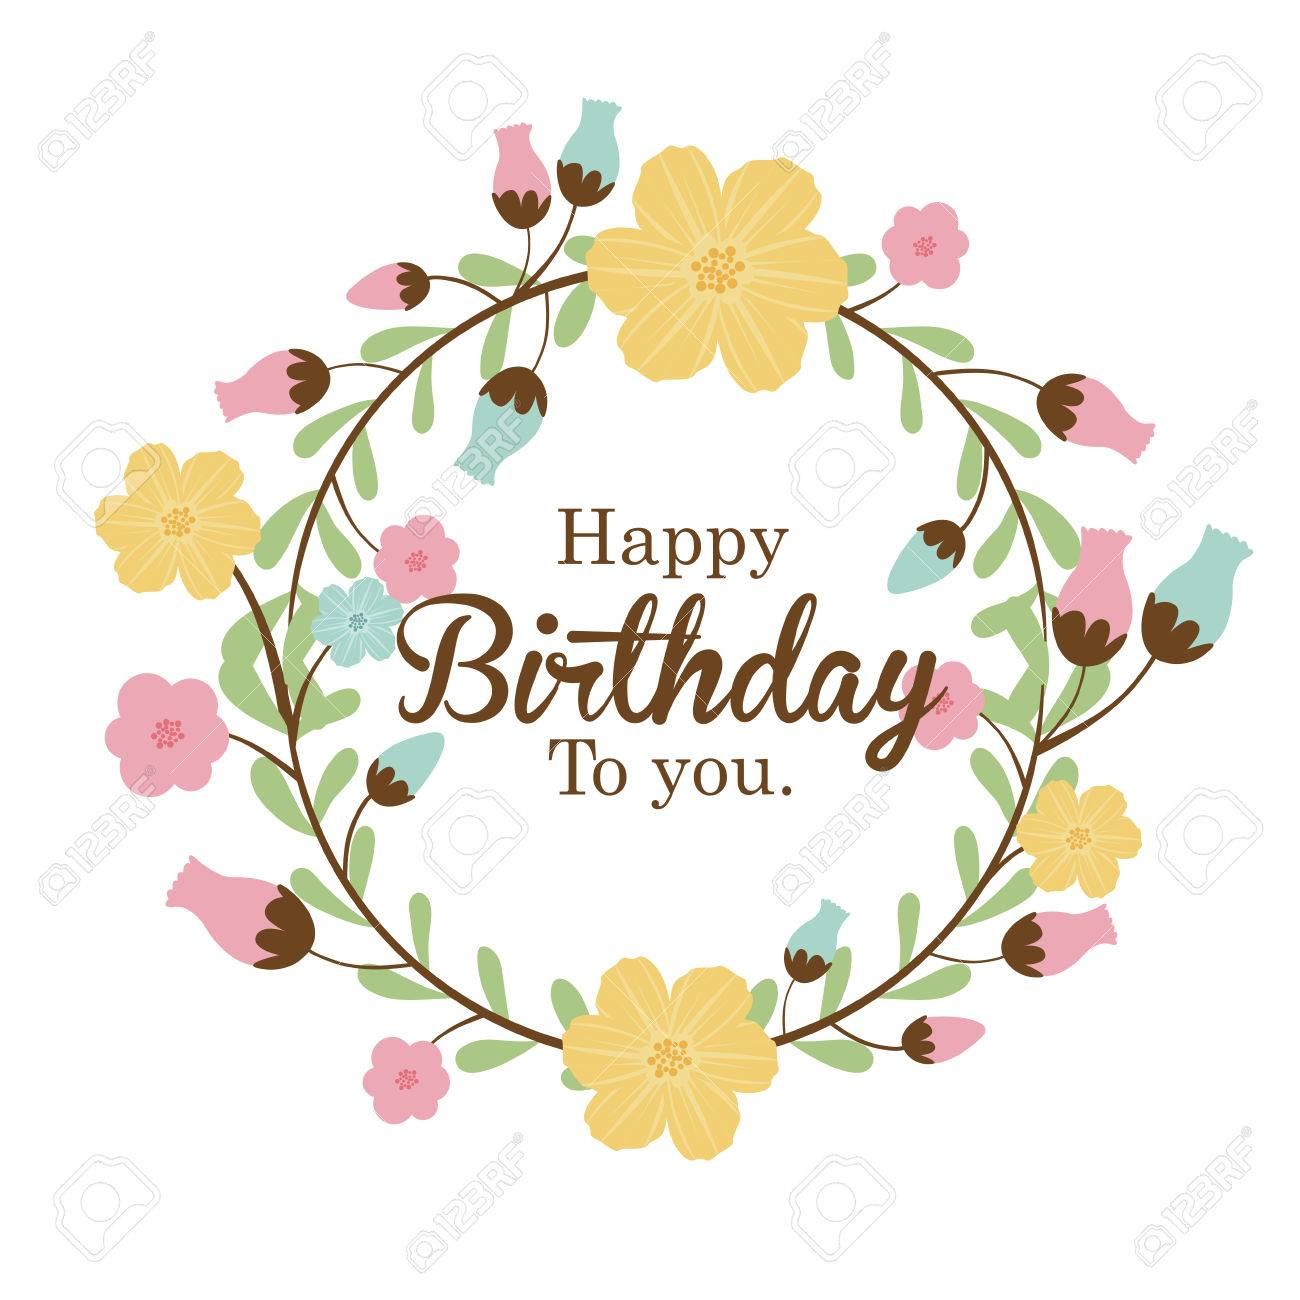 happy birthday  design over white background vector illustration Stock Vector - 27181426